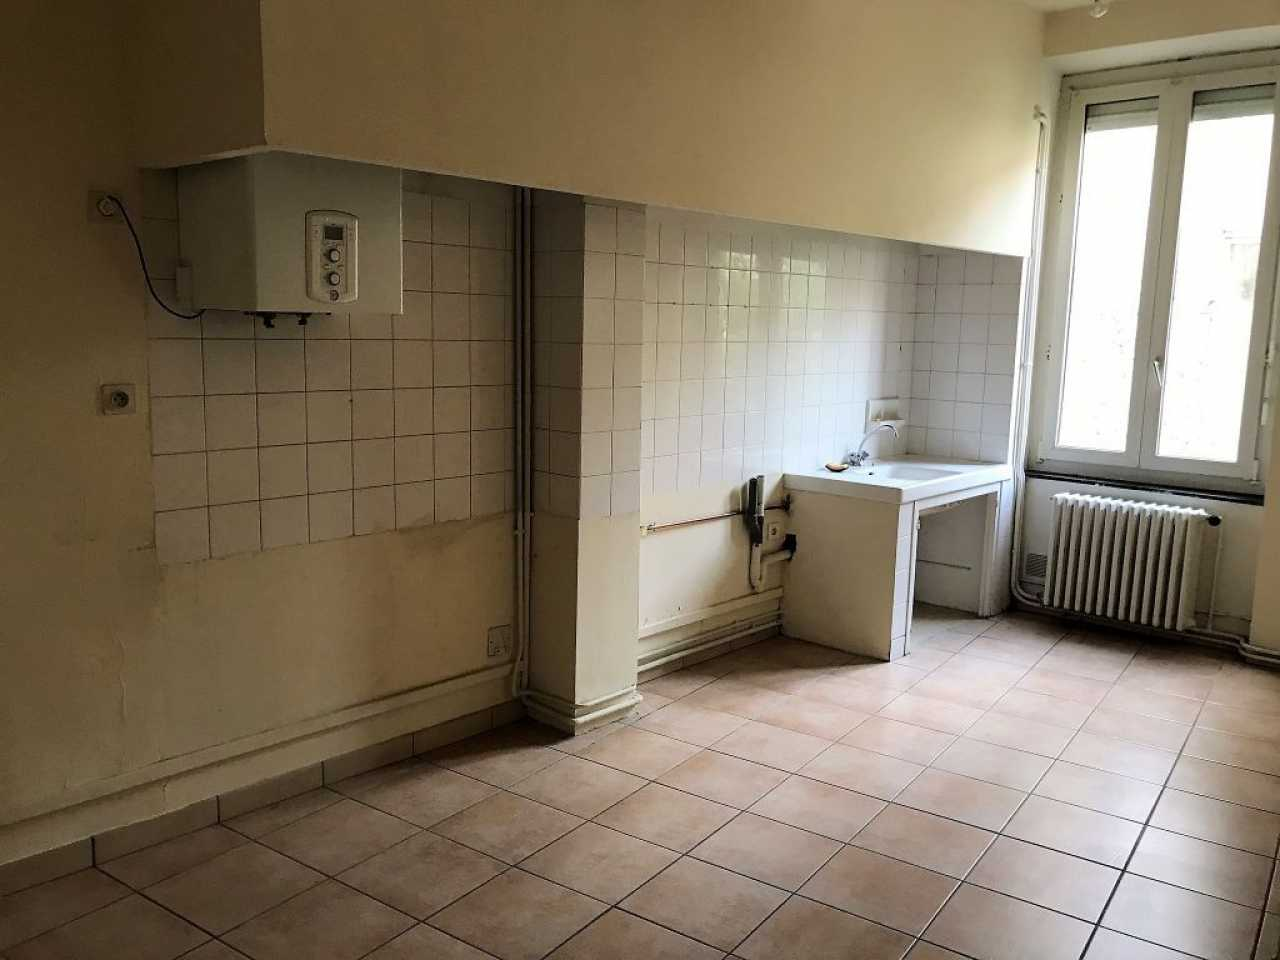 Apartment CARCASSONNE | 435 € / month